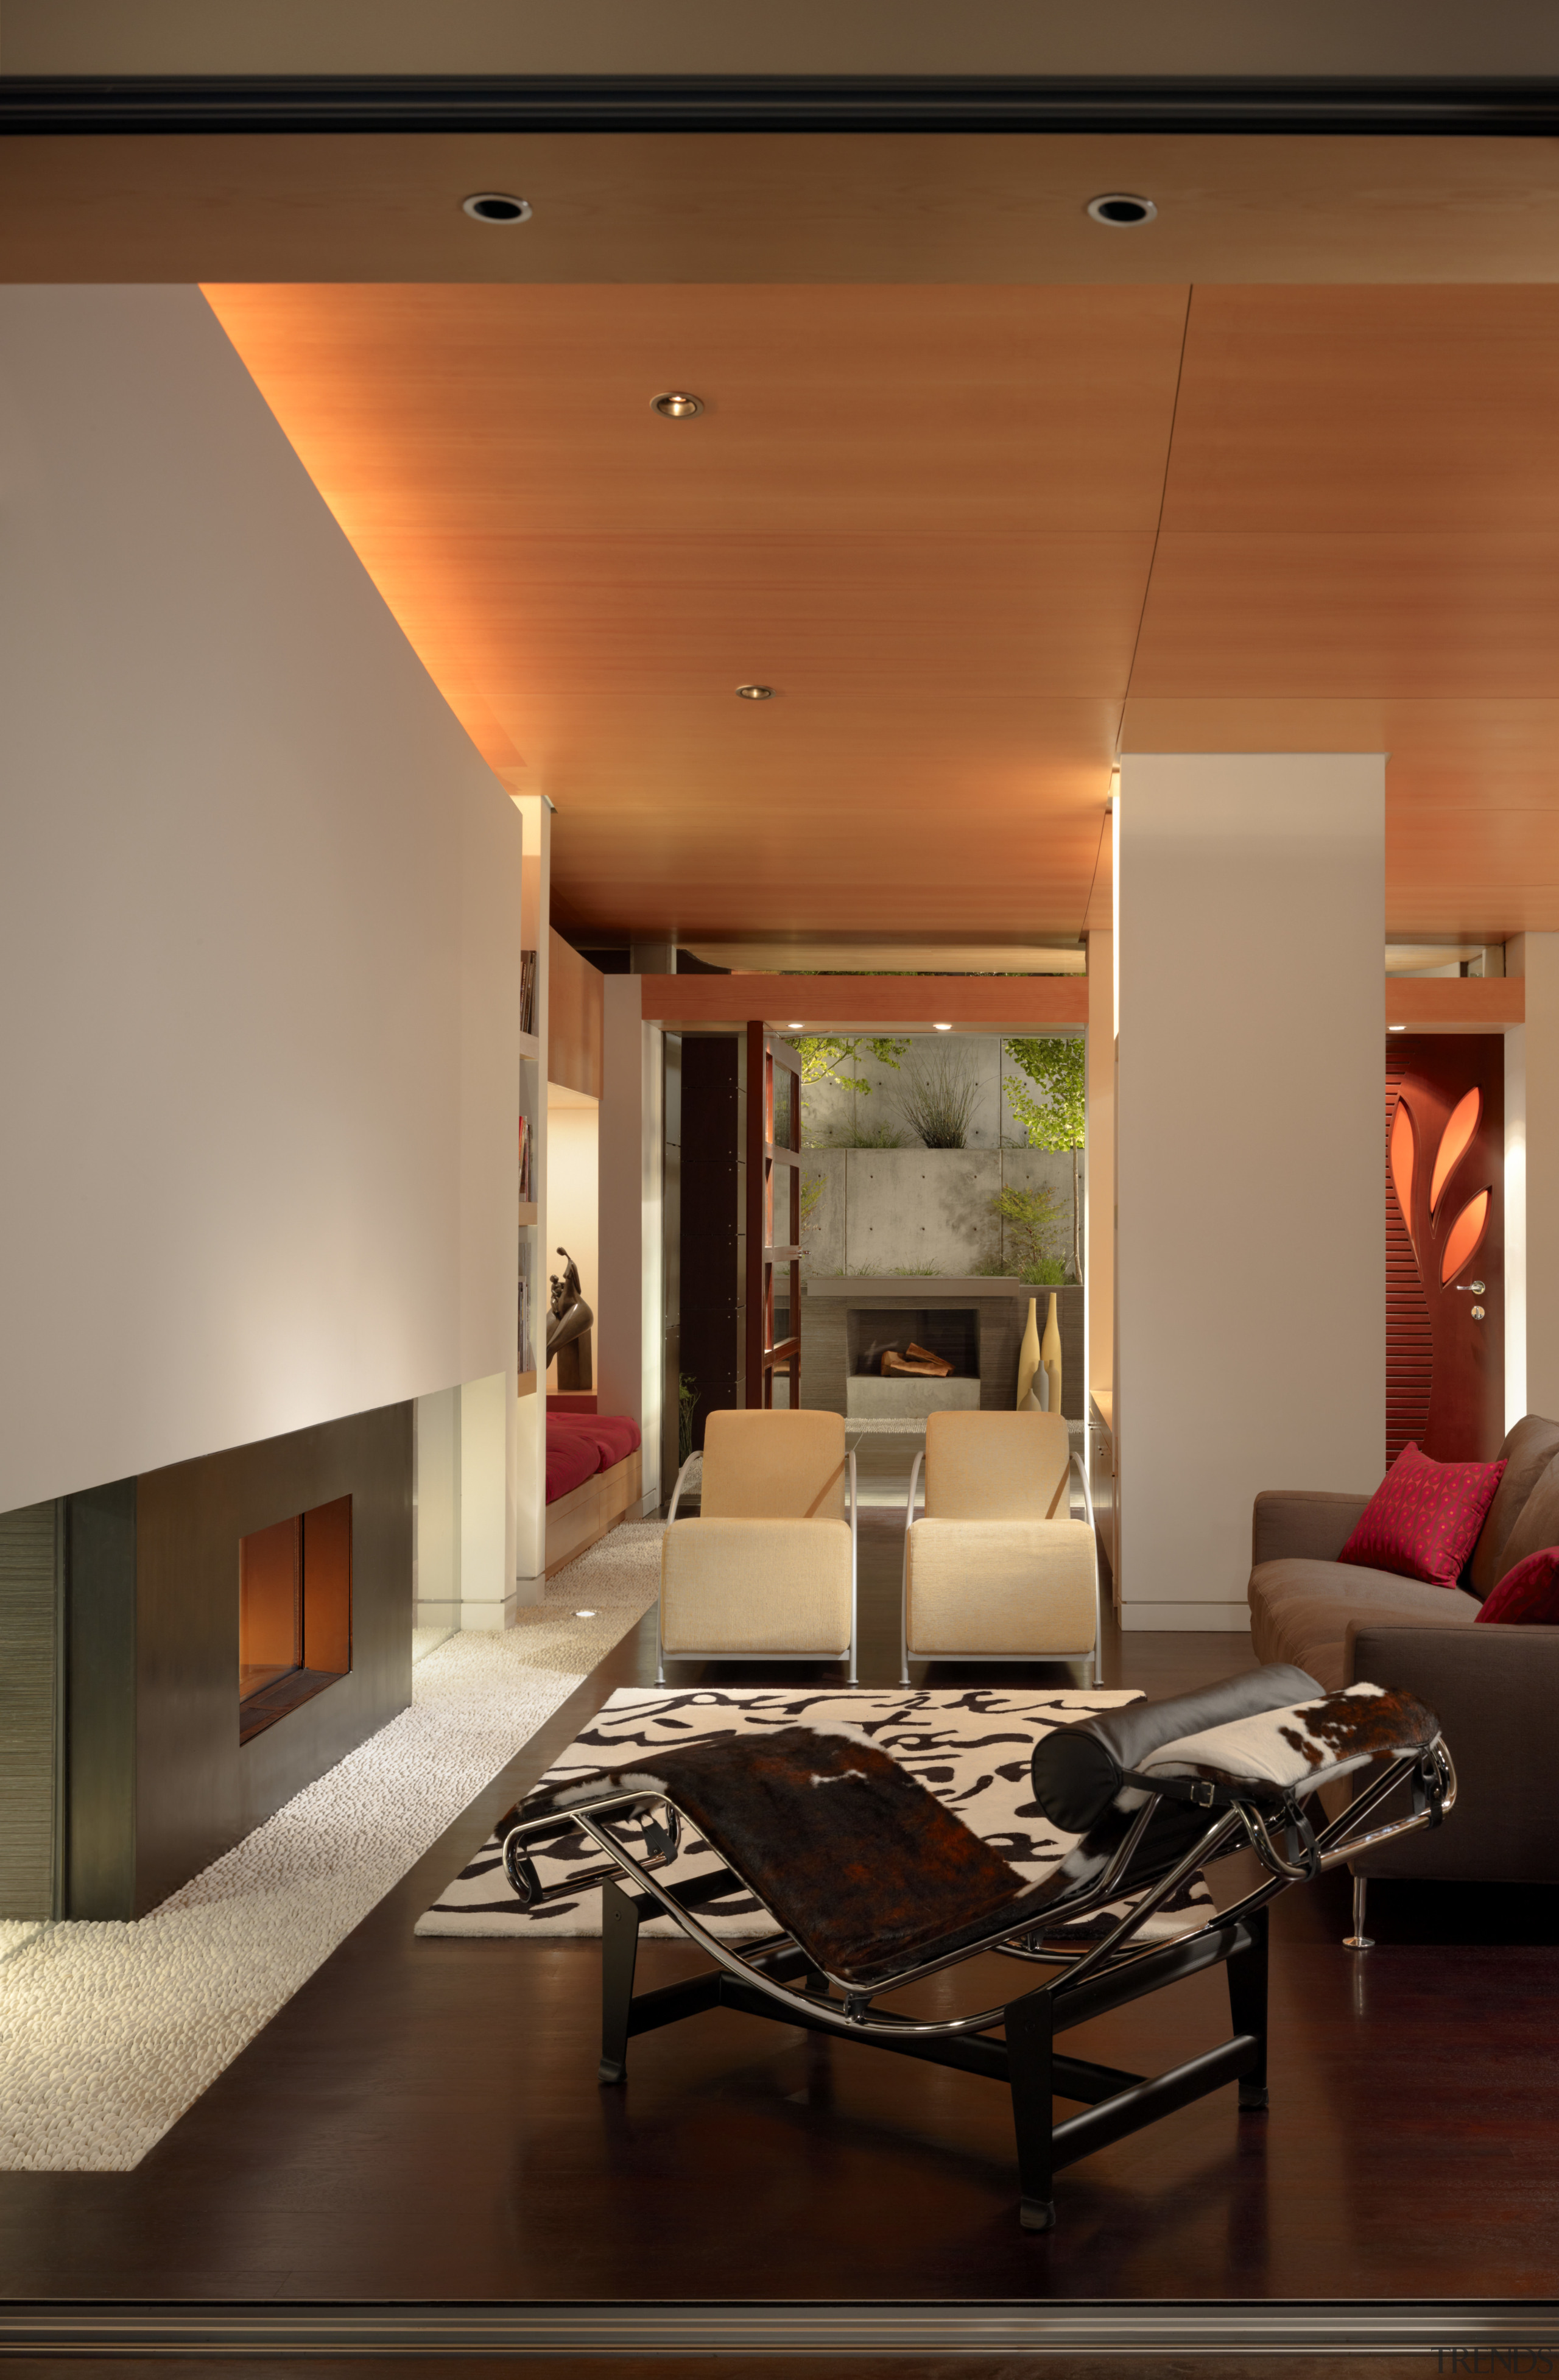 View of a living area with sofas, seating architecture, ceiling, floor, home, house, interior design, lighting, living room, lobby, room, table, wall, brown, orange